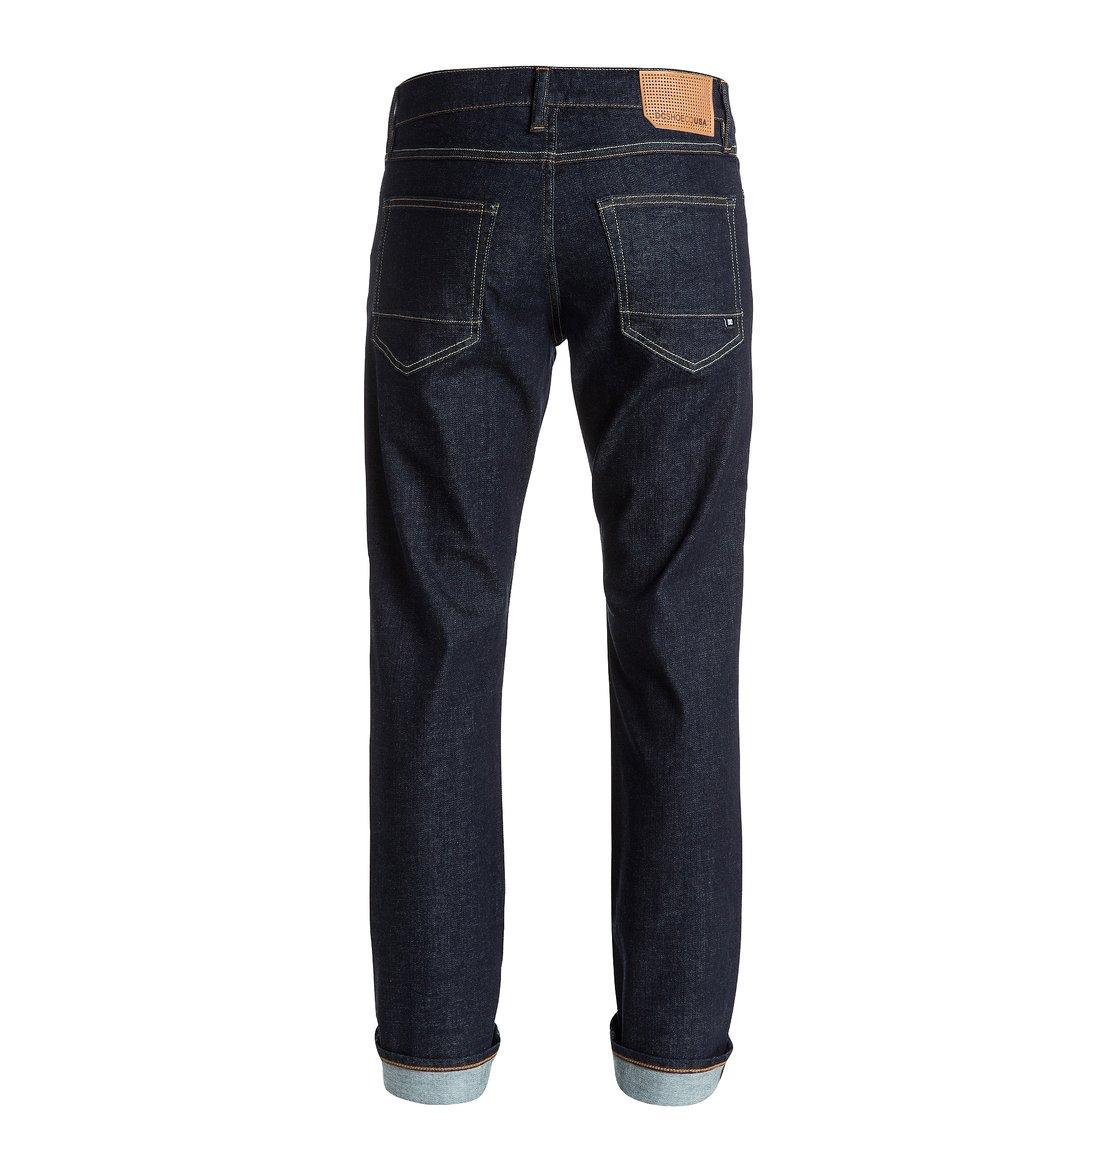 Jean Dc Shoes Straight